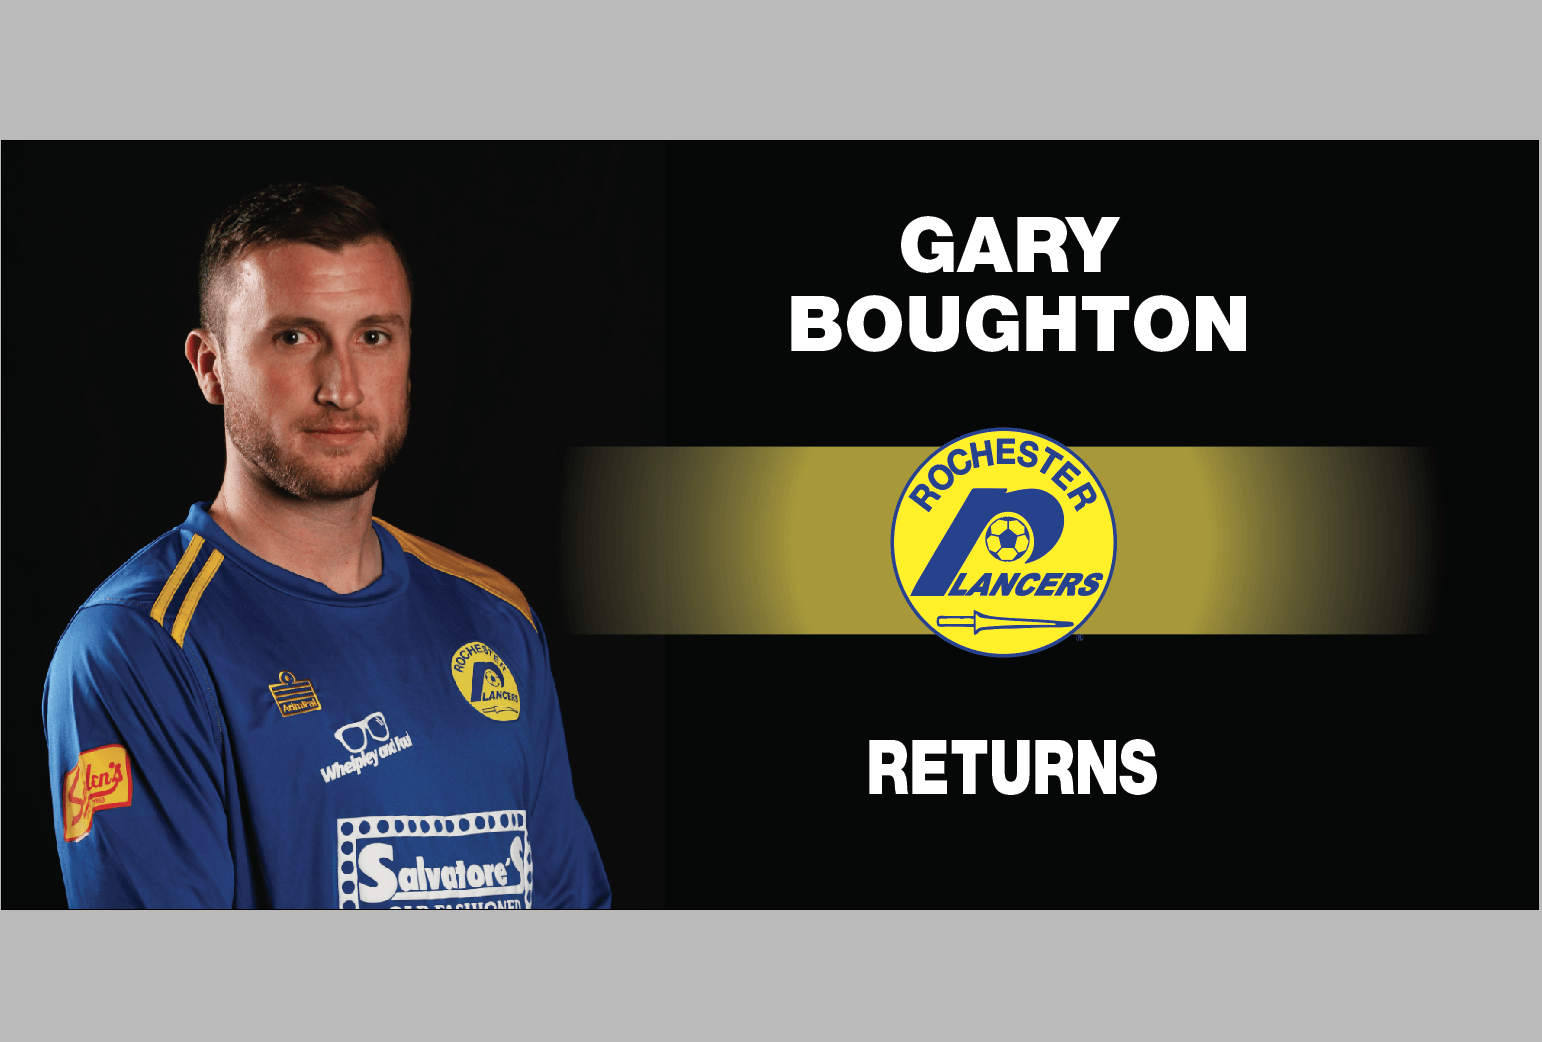 GARY BOUGHTON IS BACK FOR THE 2019/20 SEASON!